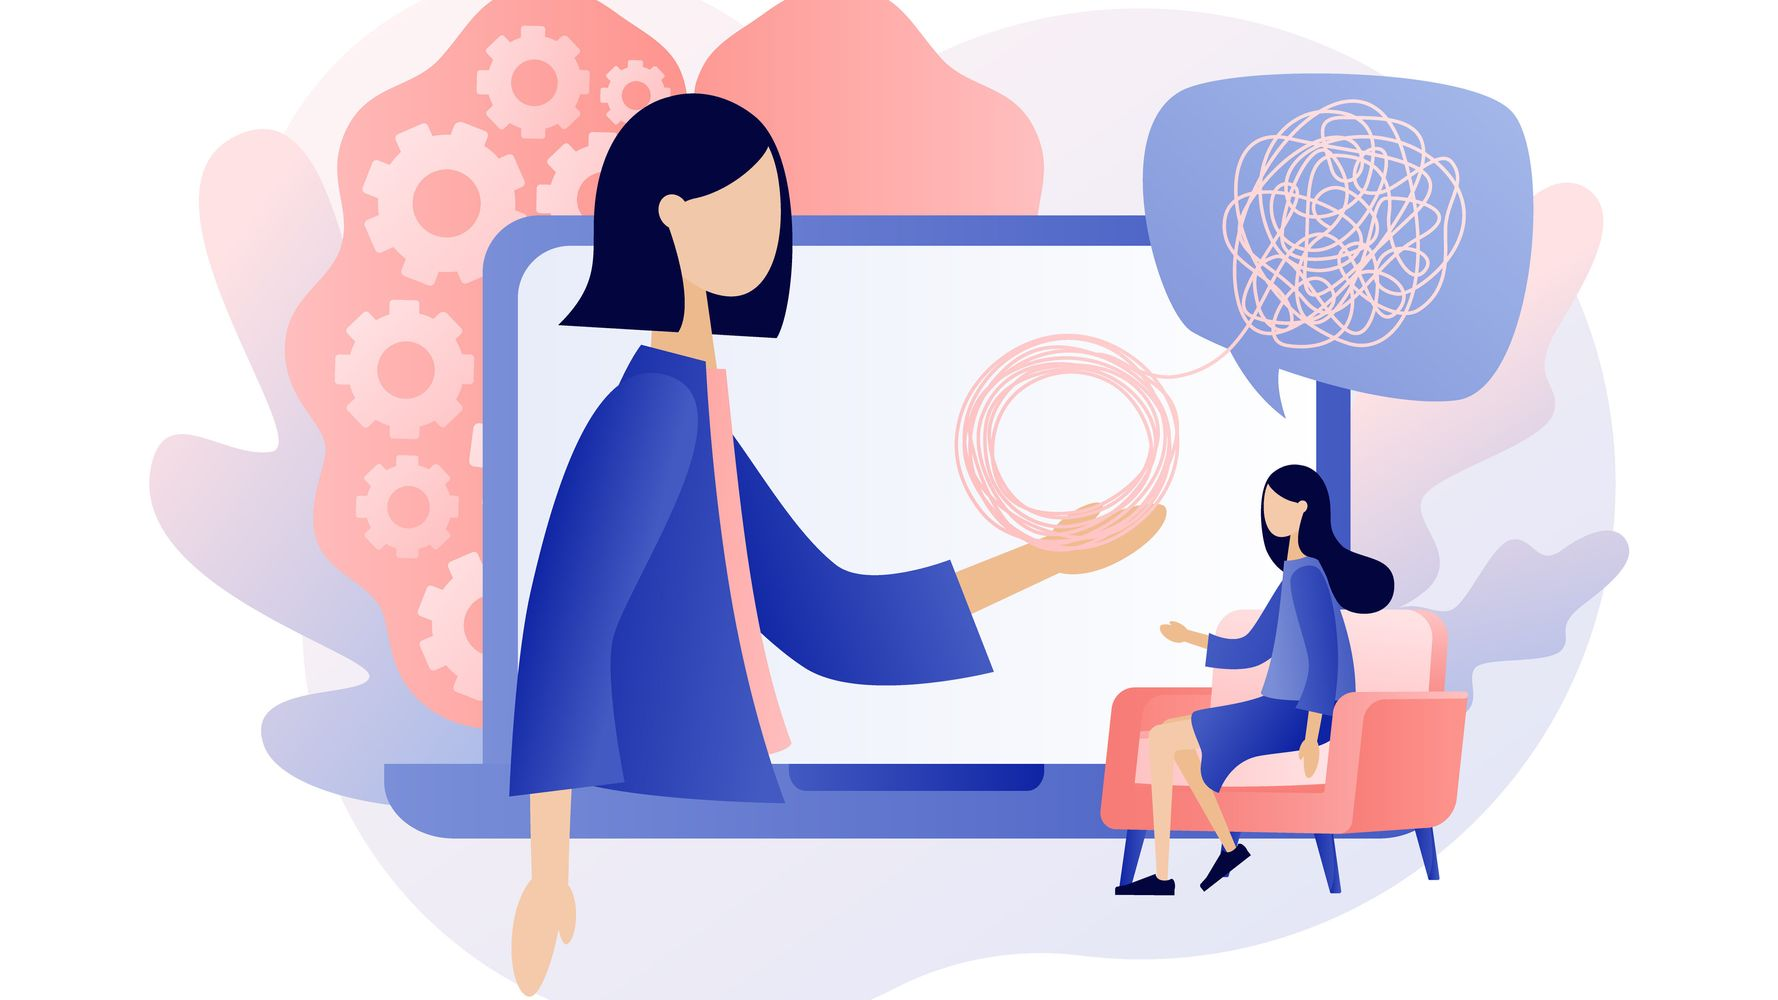 A cartoon image of a woman in a computer screen, offering support to another woman in a chair.